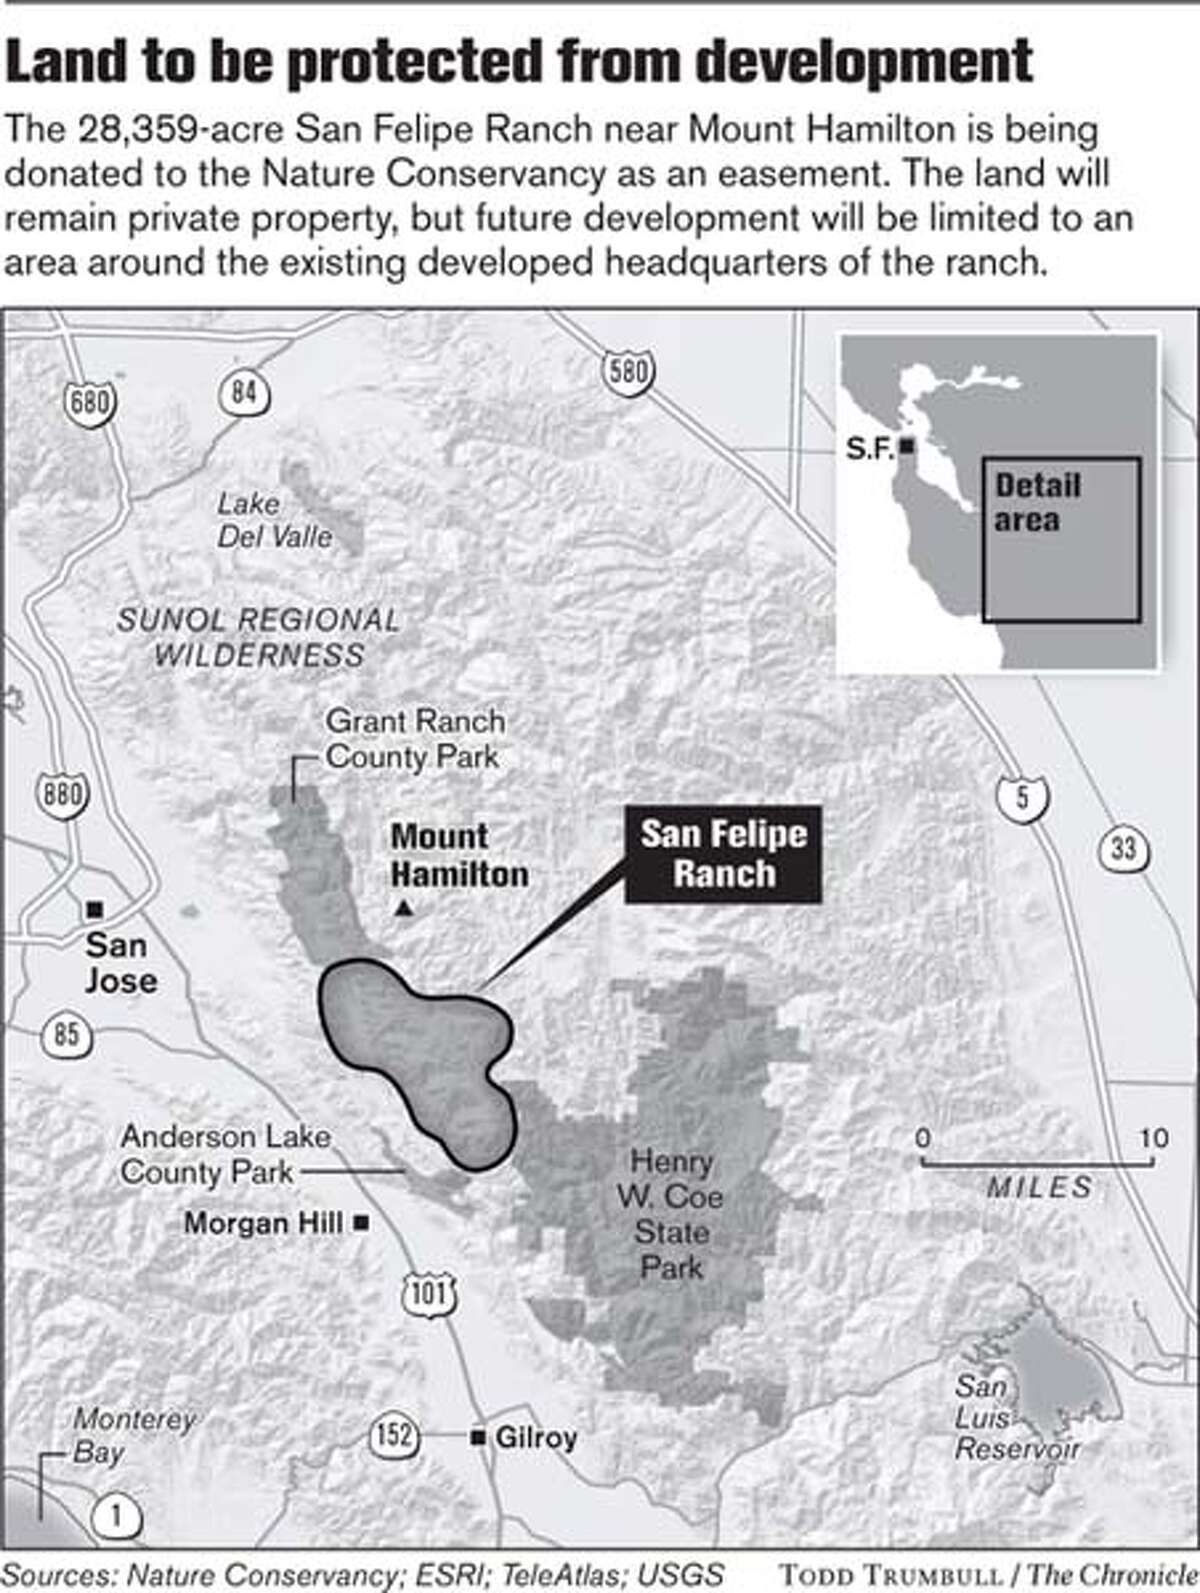 Land to be protected from development. Chronicle graphic by Todd Trumbull